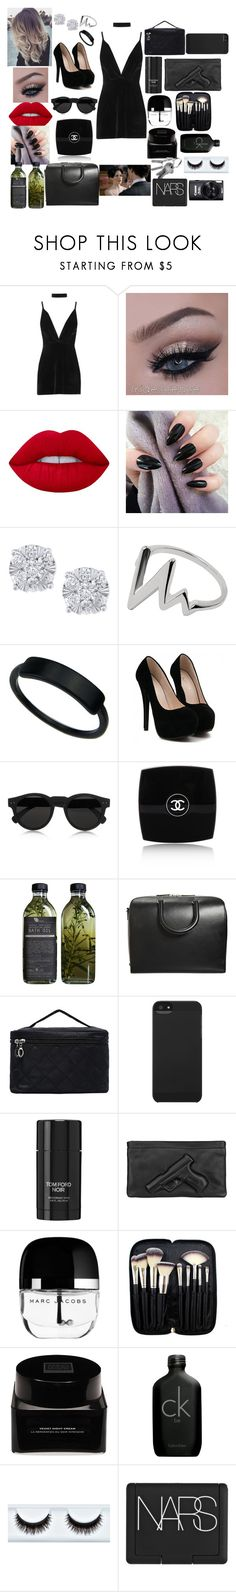 """My old lover Irene Adler"" by annaconley on Polyvore featuring Boohoo, Lime Crime, Effy Jewelry, Illesteva, Chanel, AMBRE, Maison Margiela, Incase, Tom Ford and Vlieger & Vandam"